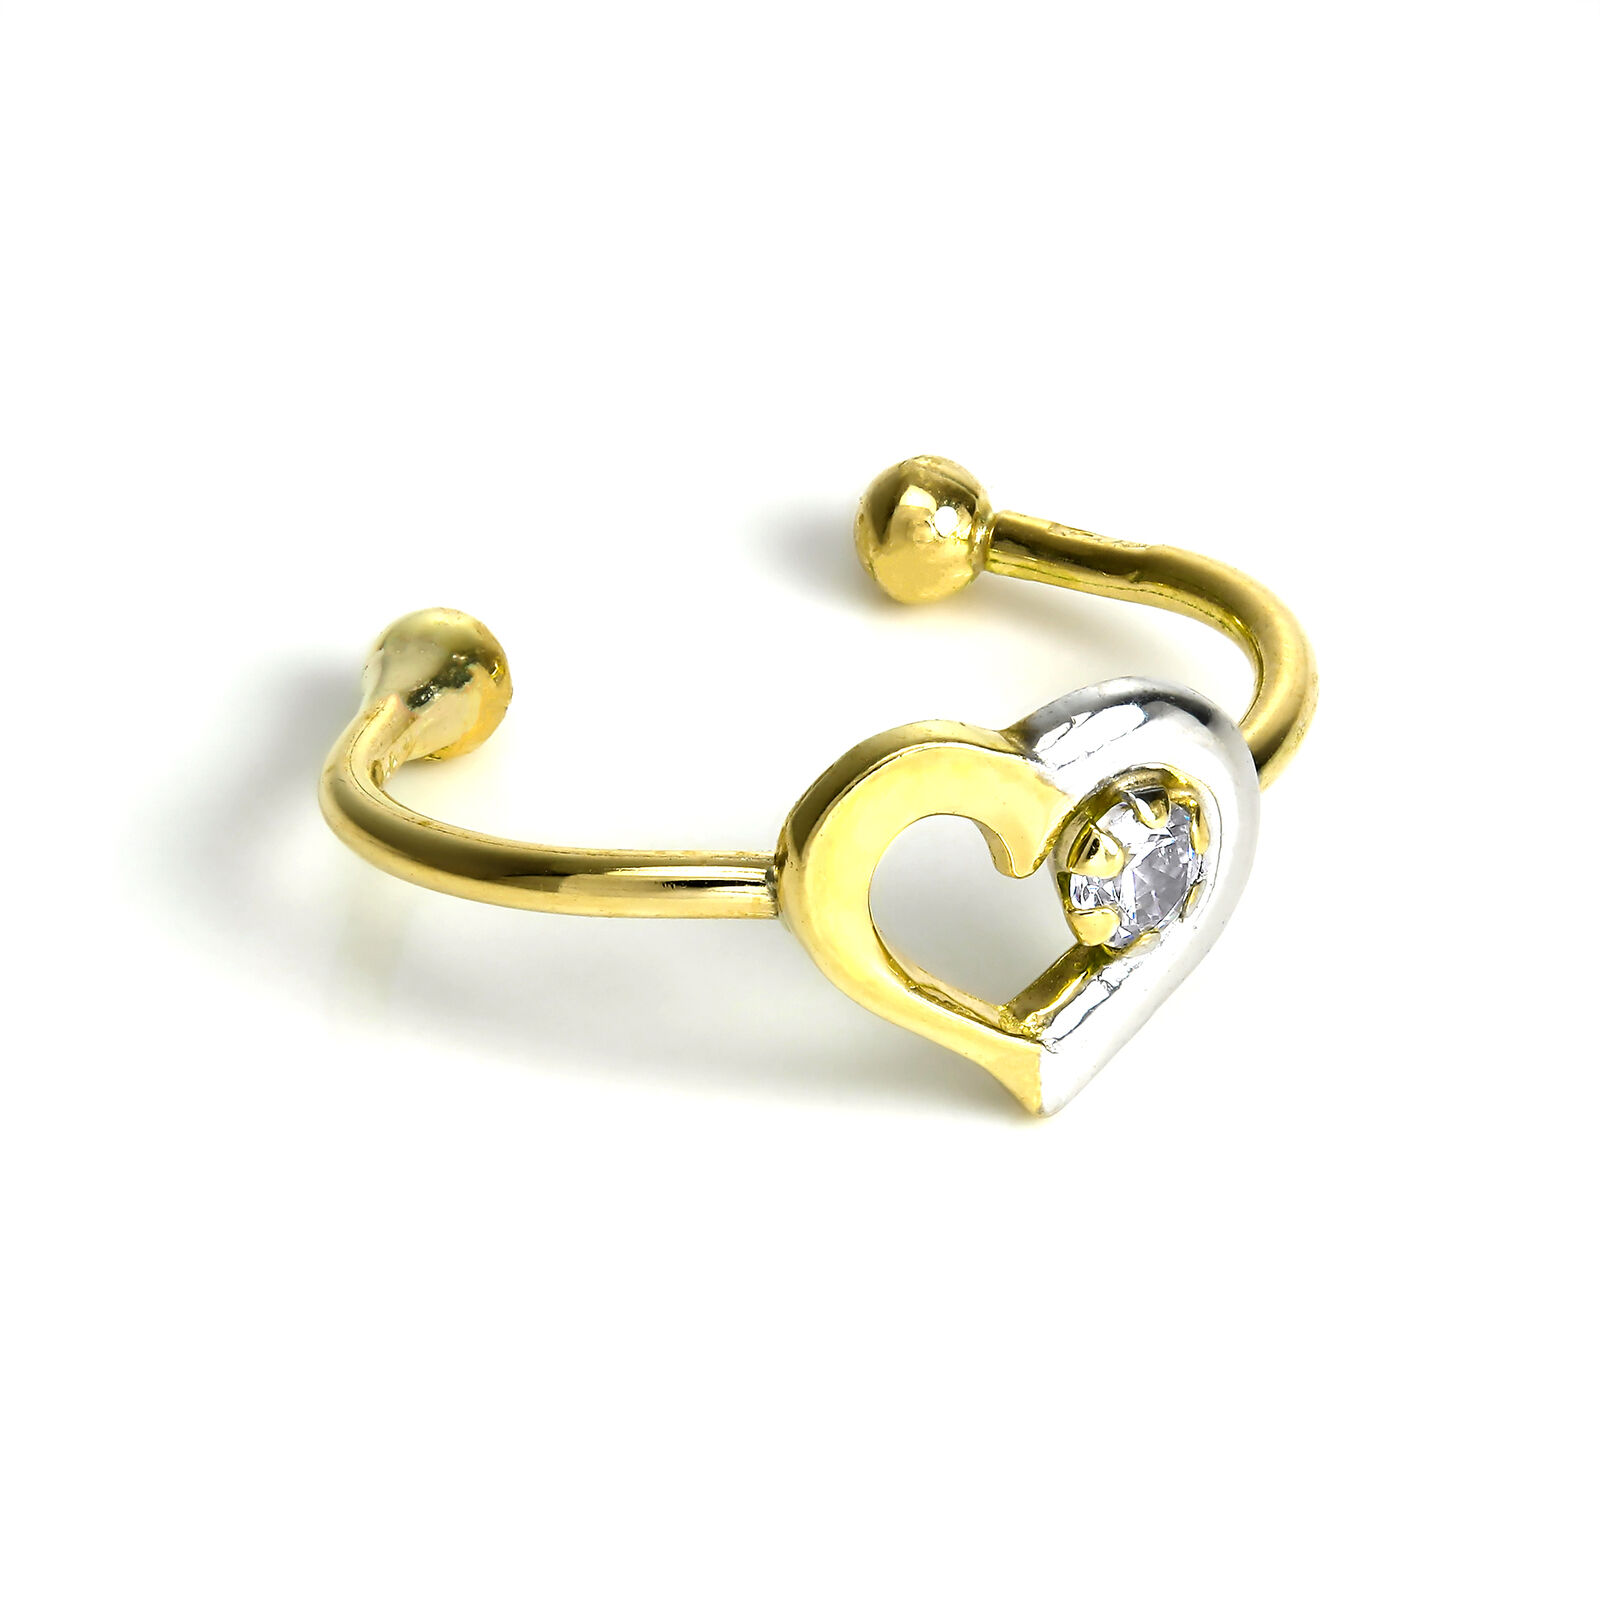 9ct Yellow & White gold Open Heart Ear Cuff with Small Clear CZ Crystal Single